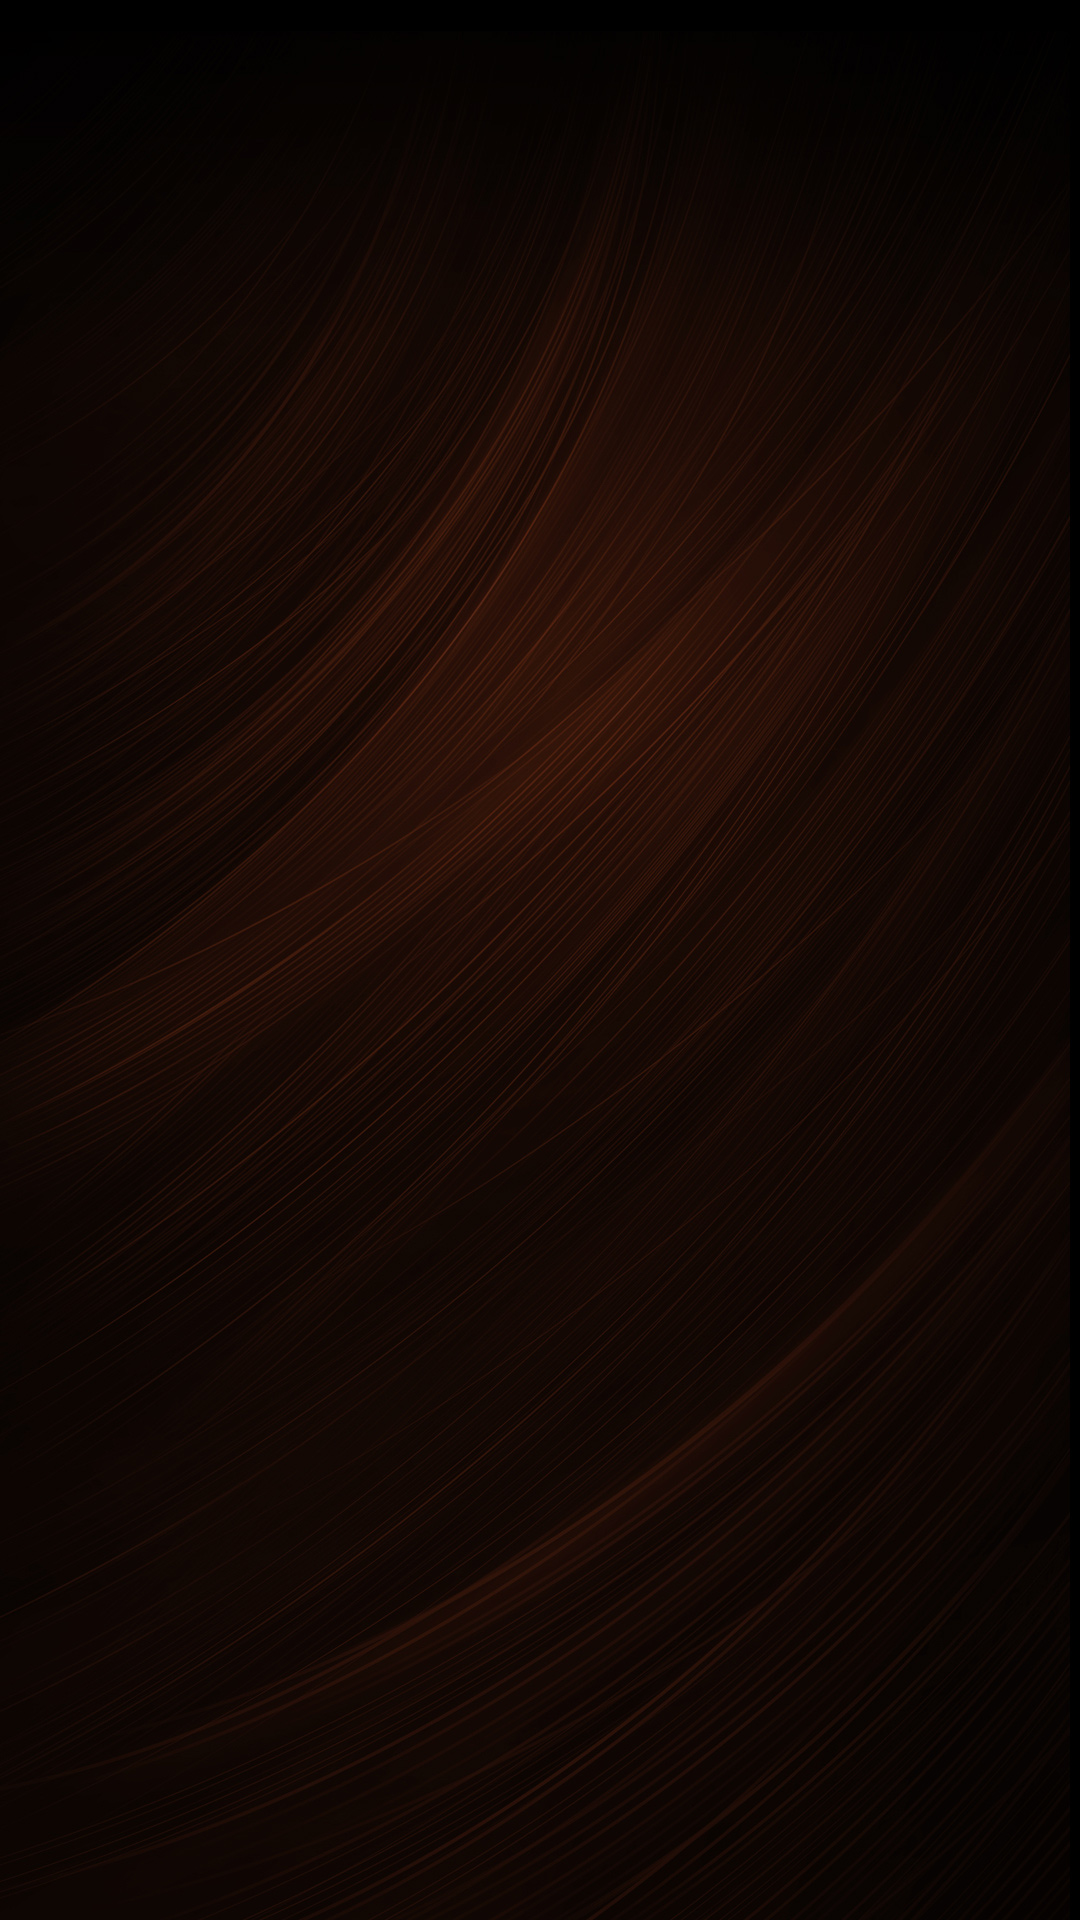 Redmi Note 4 Stock Wallpaper